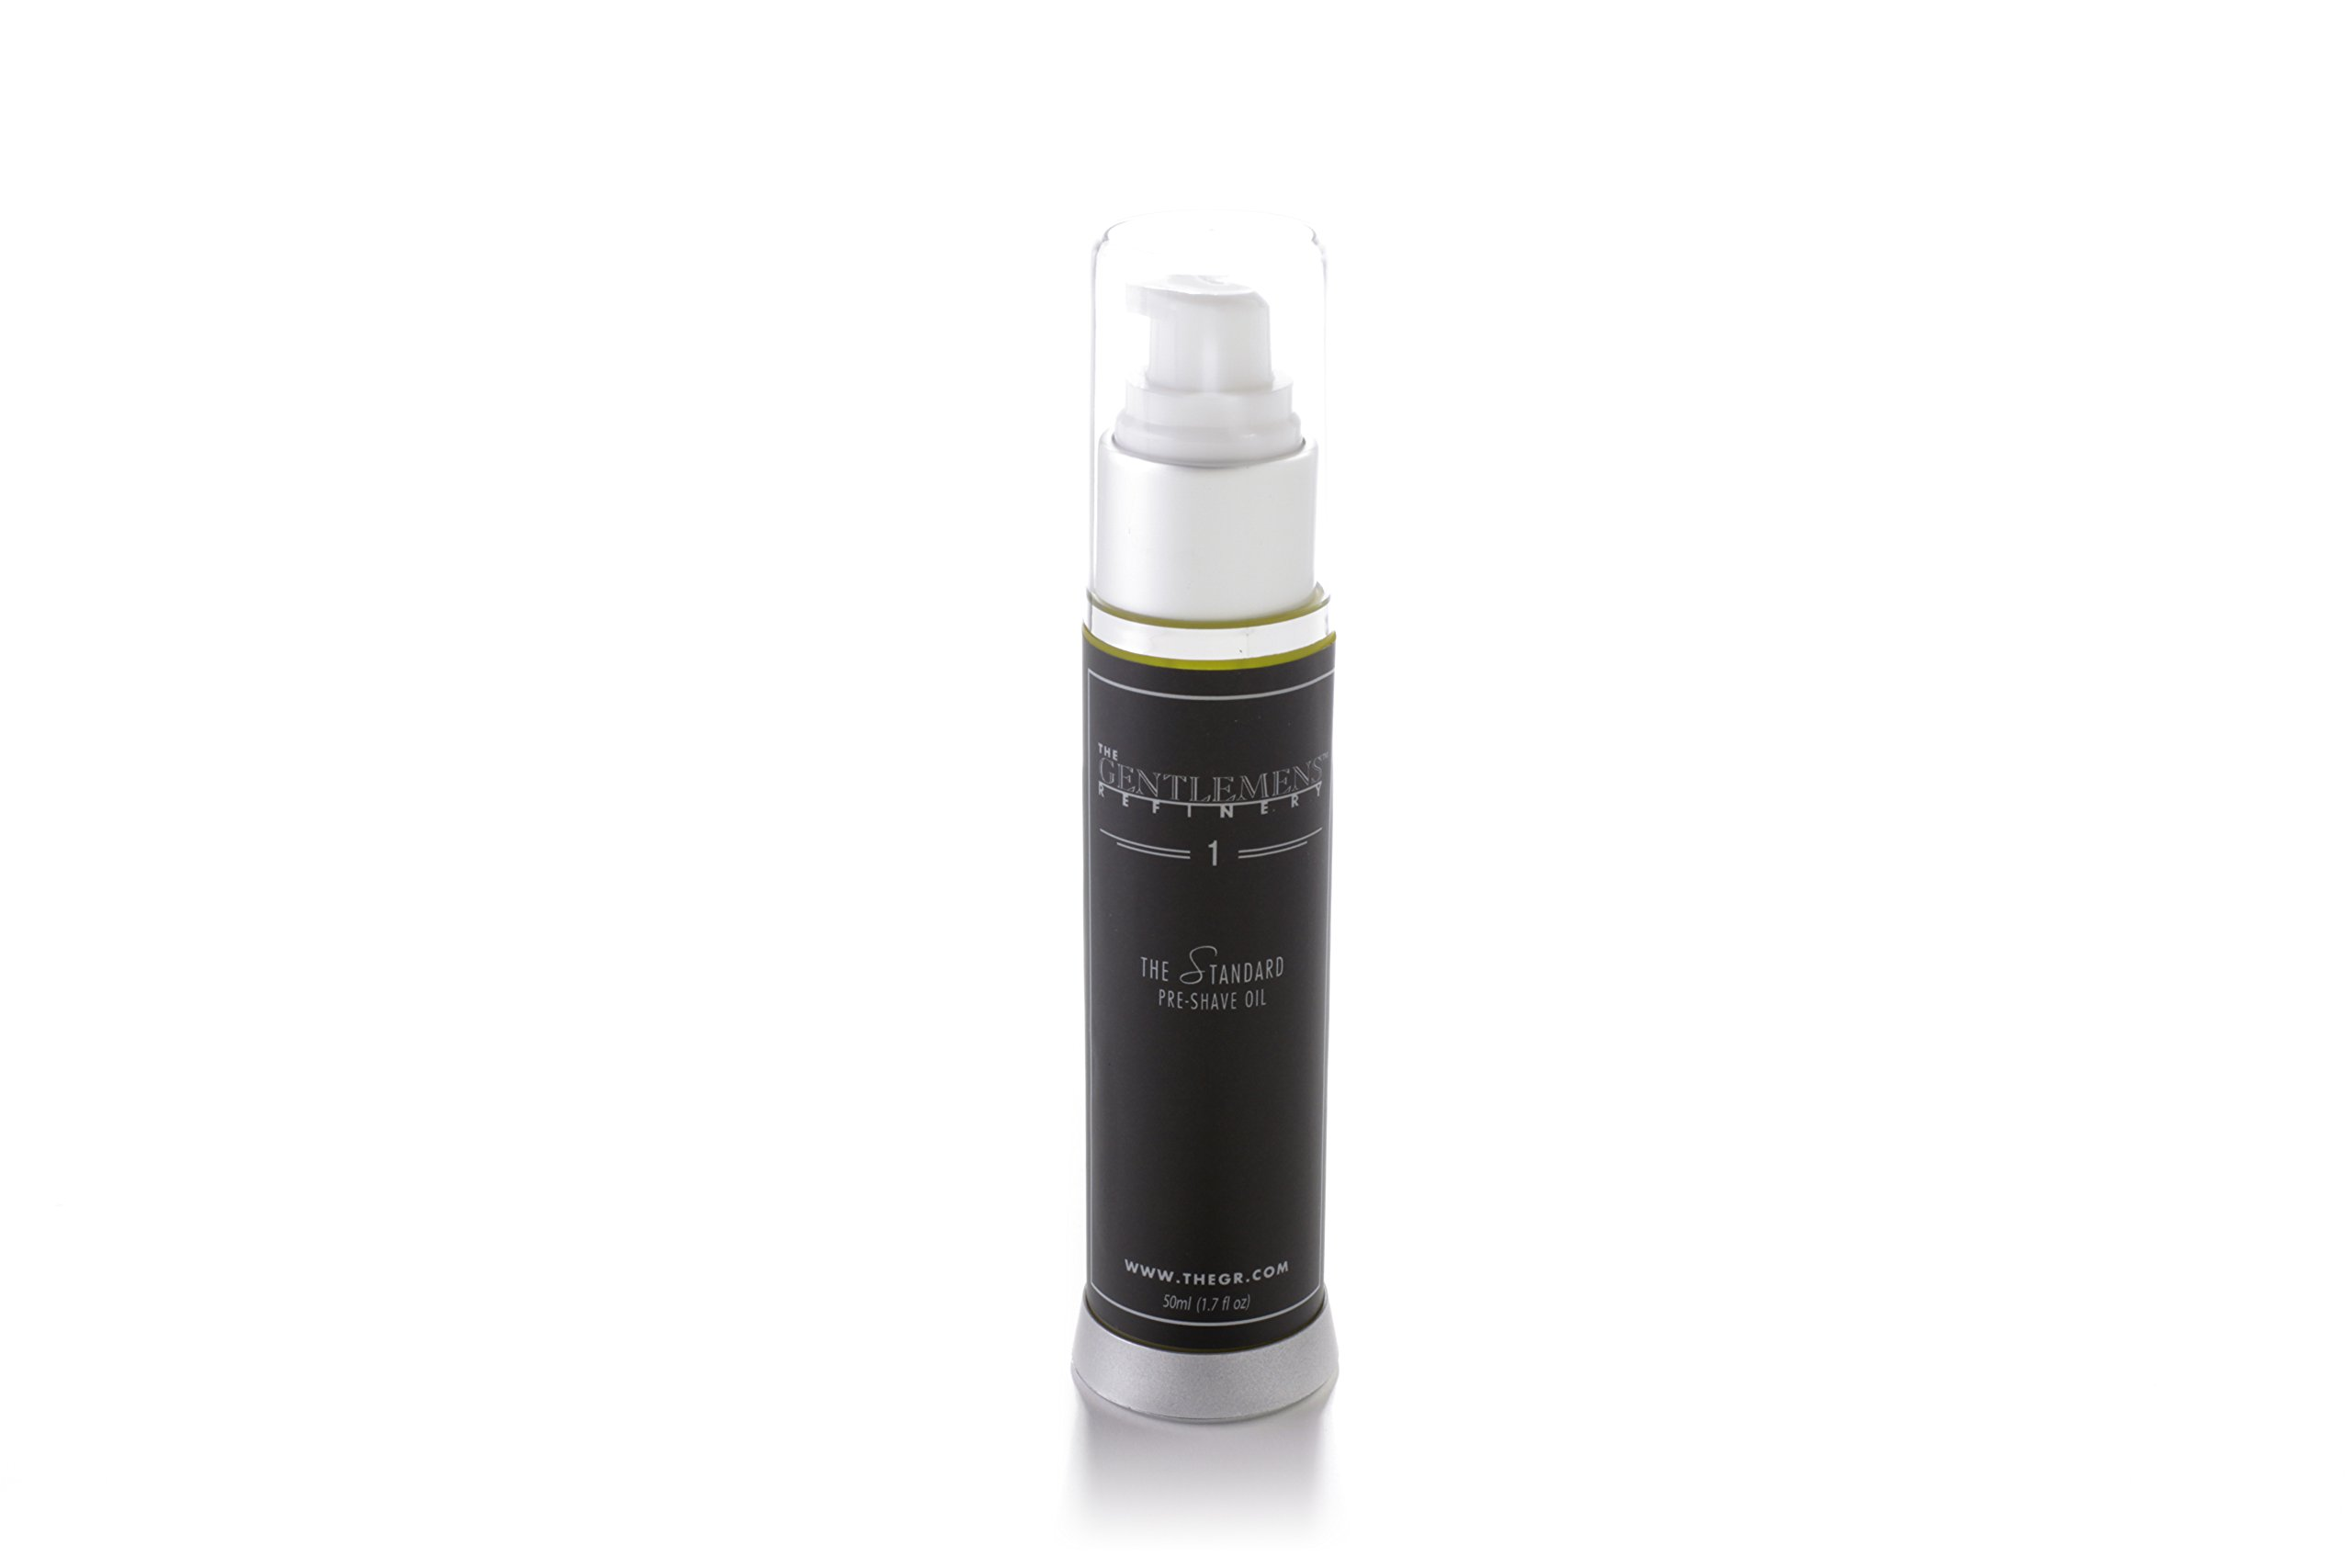 The Gentlemens Refinery 'The Standard' Pre-Shave Oil, All-Natural & Organic, 50ml